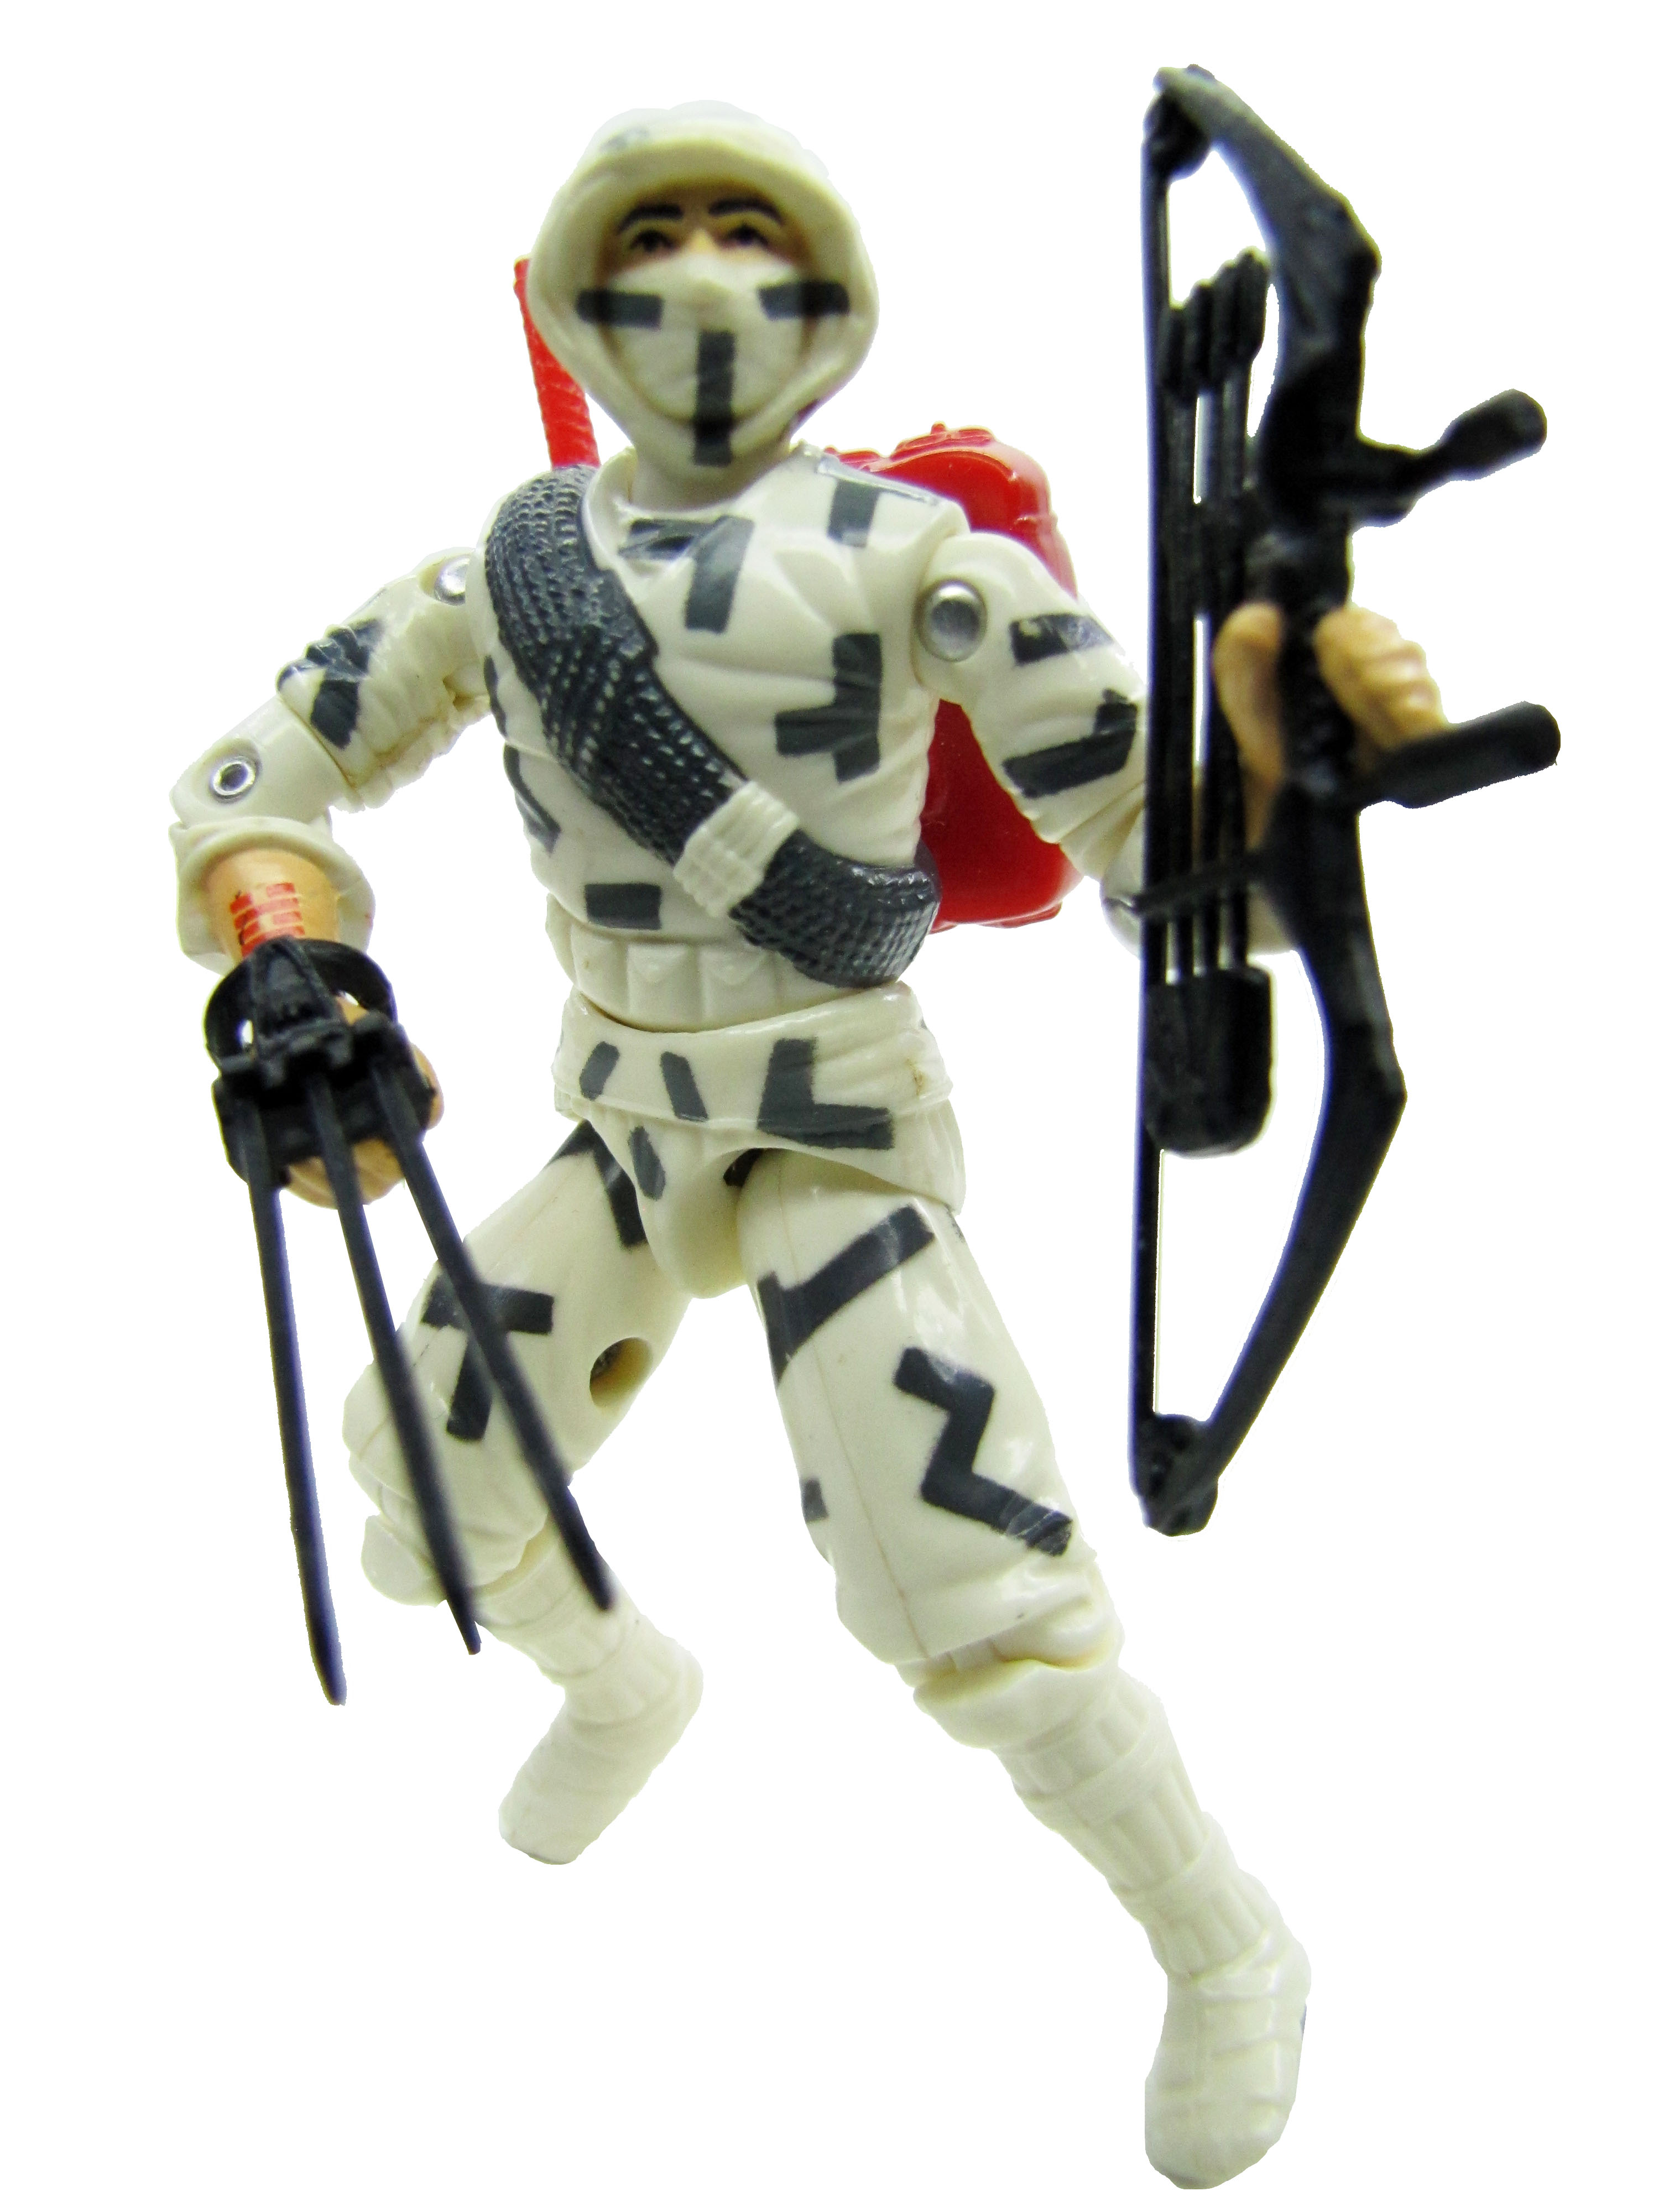 1988 GIJoe STORM SHADOW NINJA INTELLIGENCE Complete